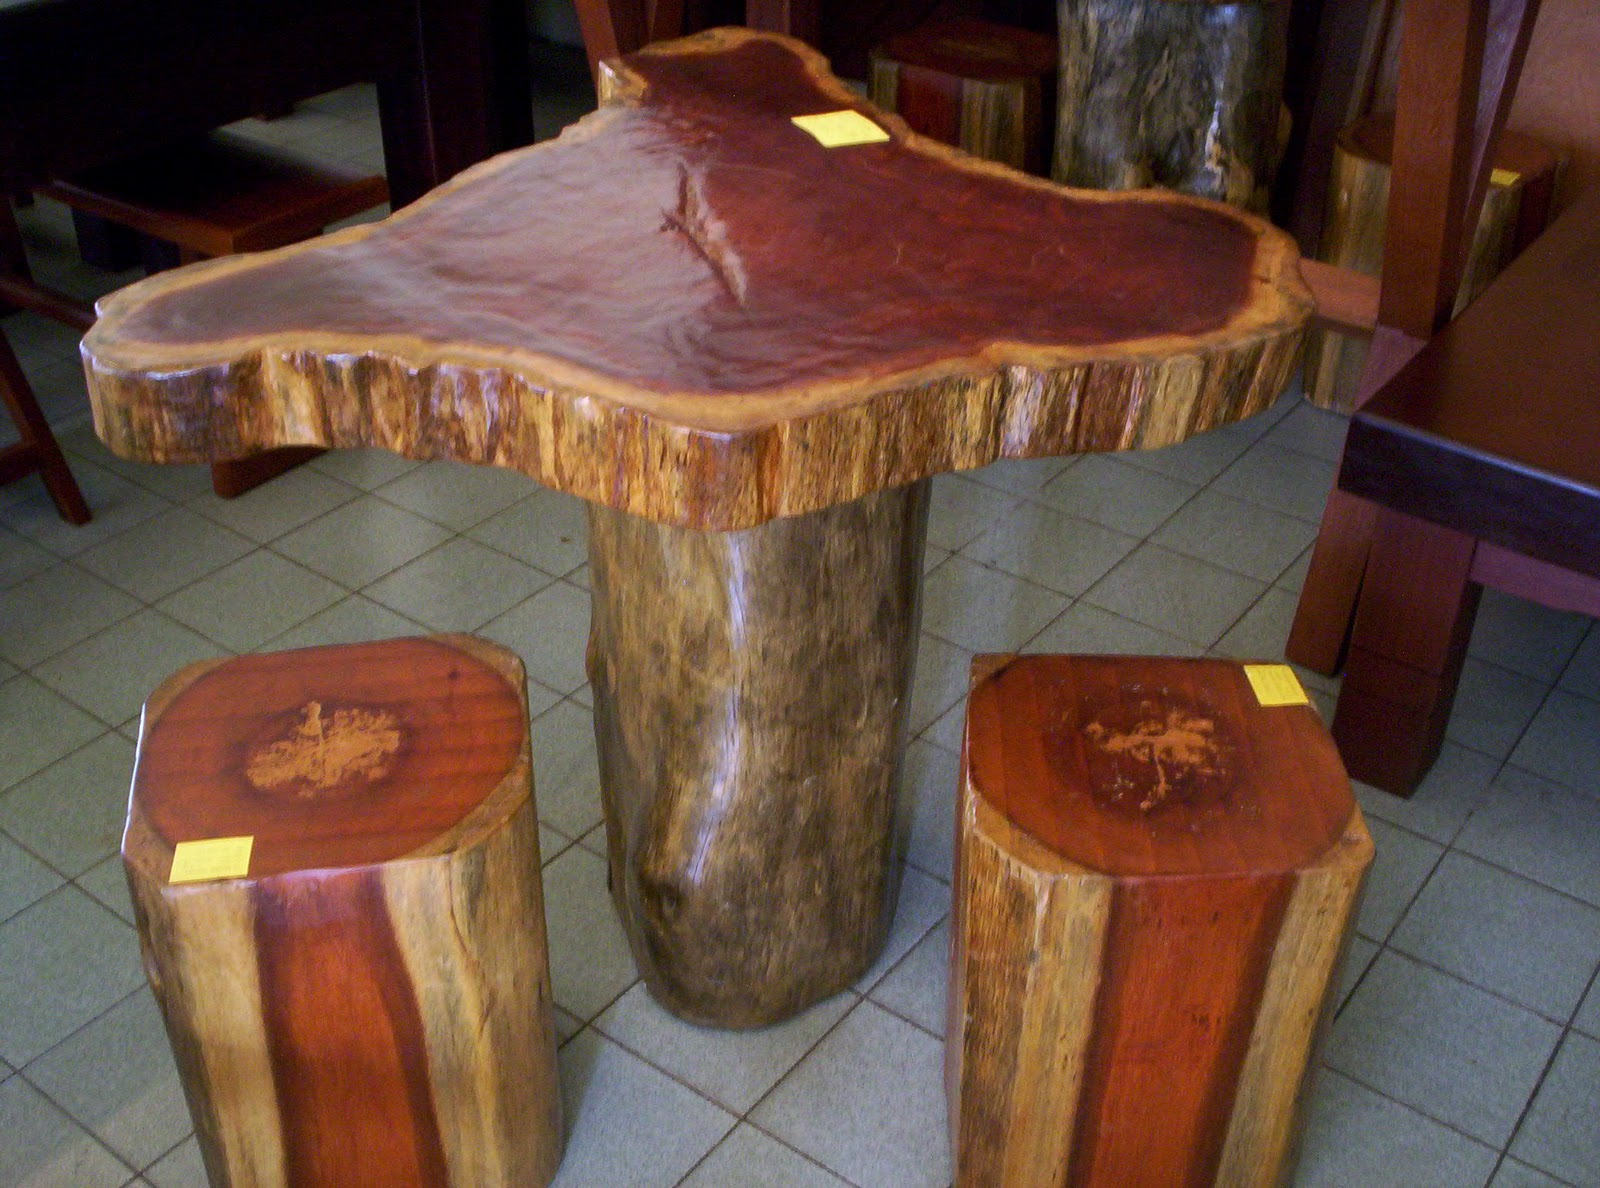 Belian wood furniture design: We are selling furniture made from